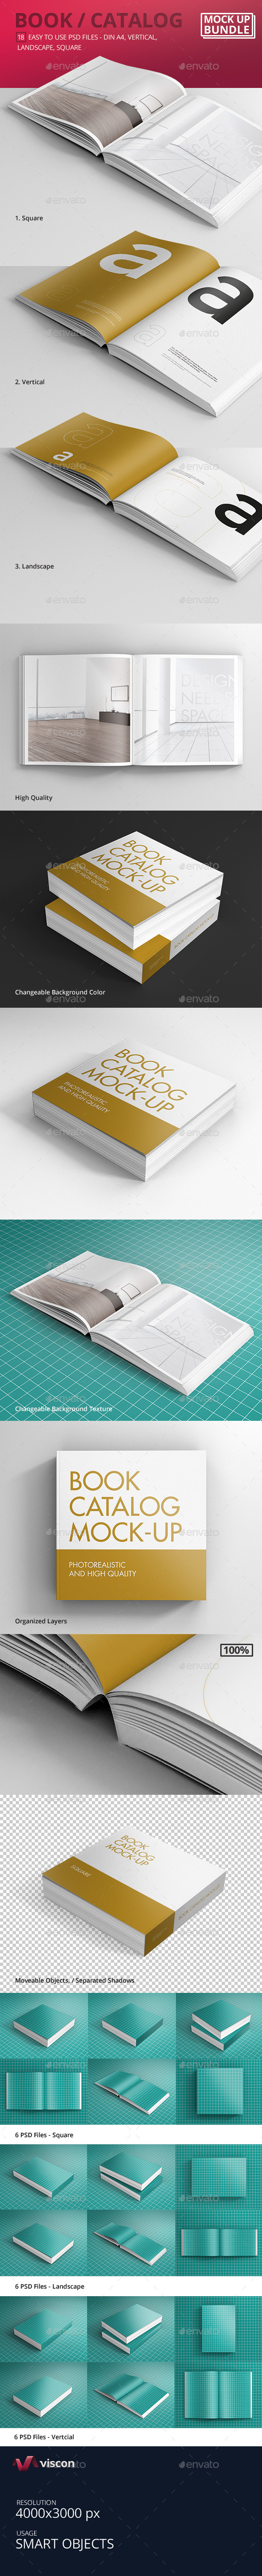 GraphicRiver Book Catalog Mock-Ups Bundle 9329110